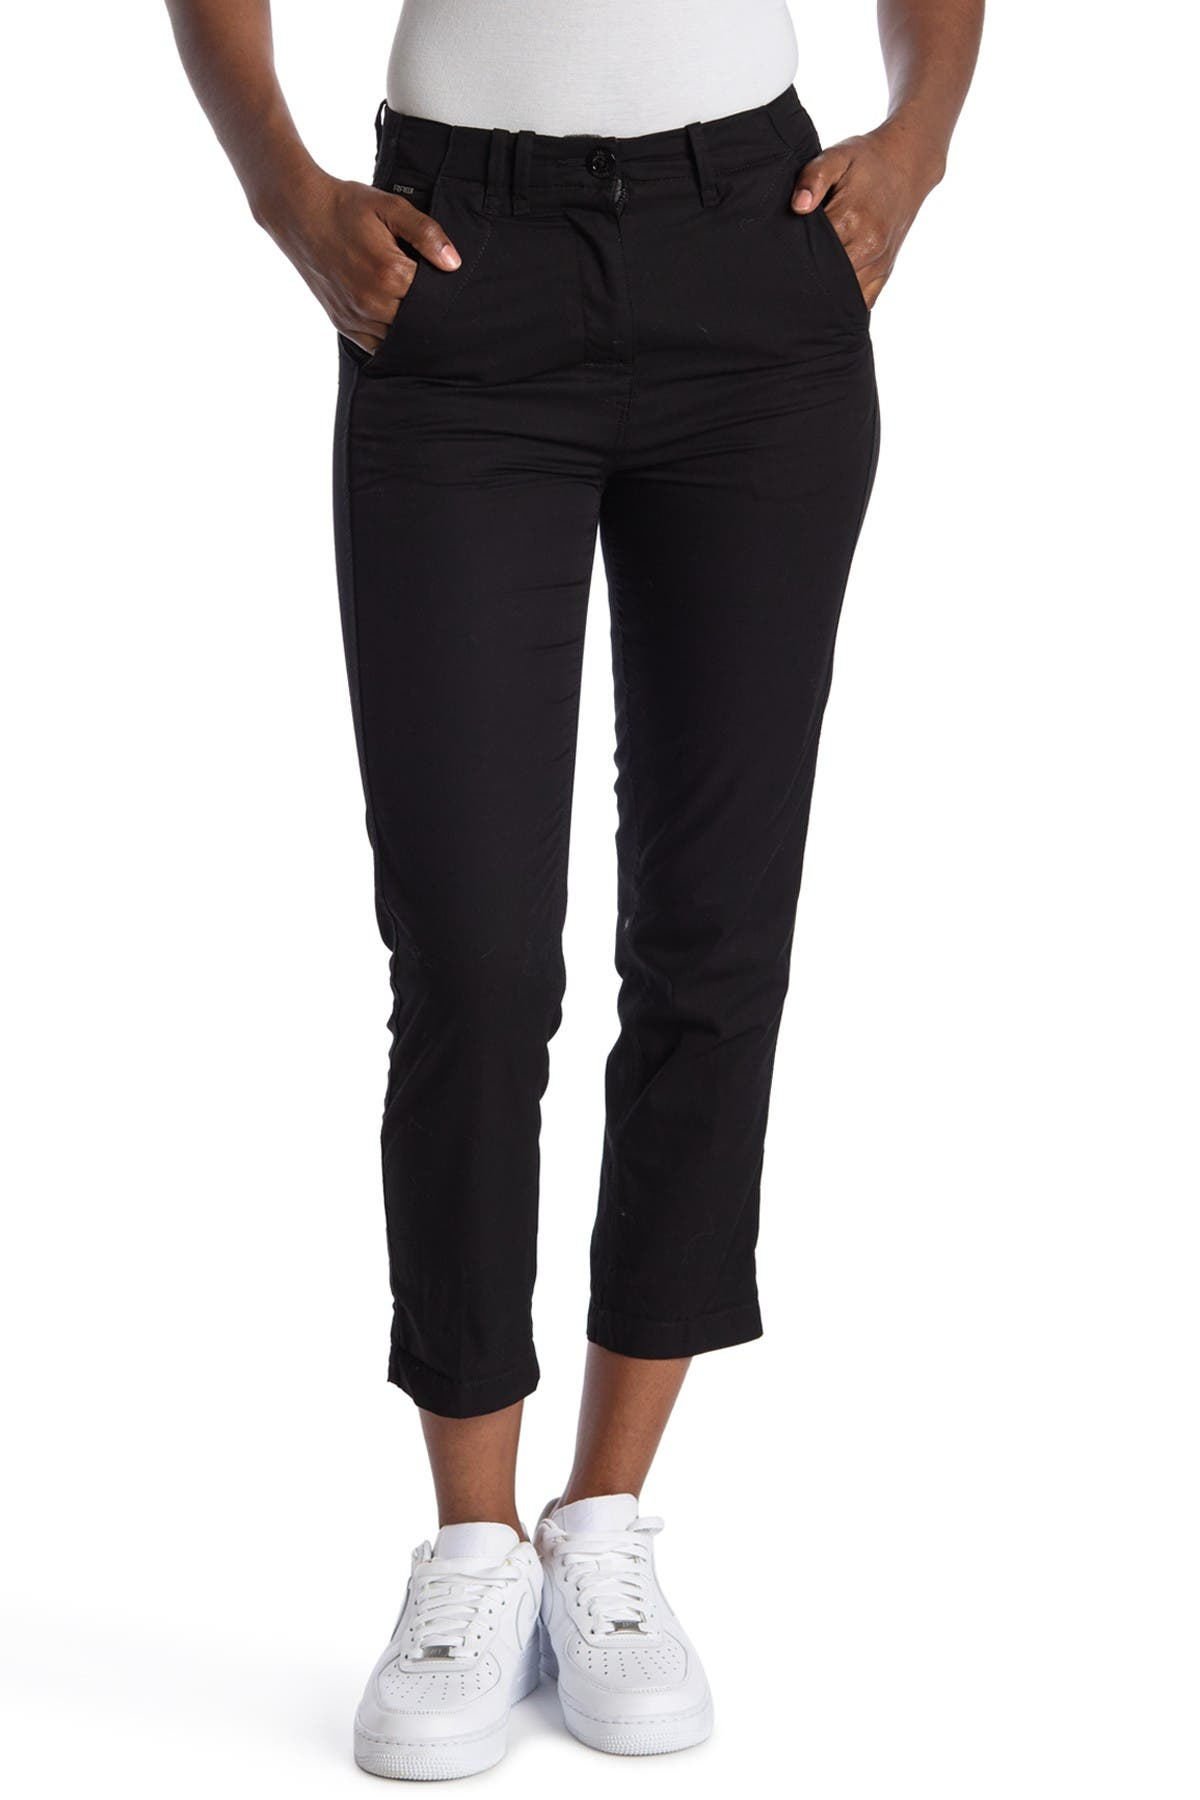 Image of G-STAR RAW Page Ankle Chino Pants